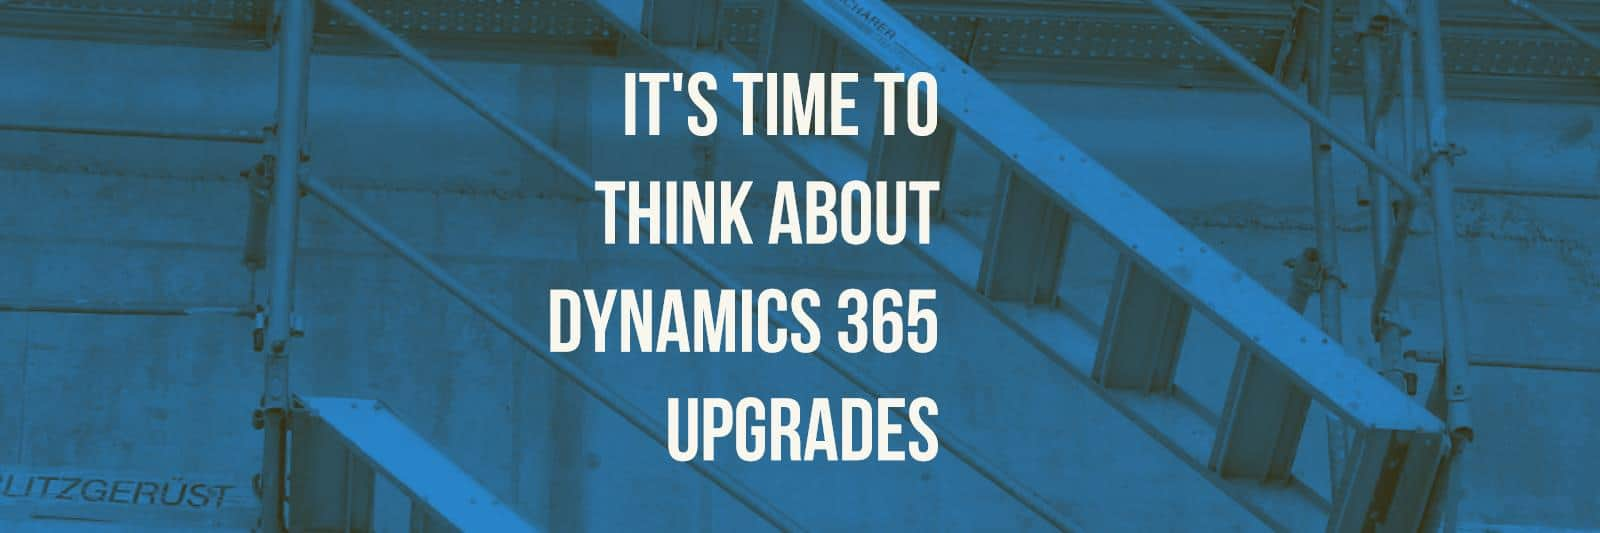 Getting Ready for your Dynamics 365 Upgrade